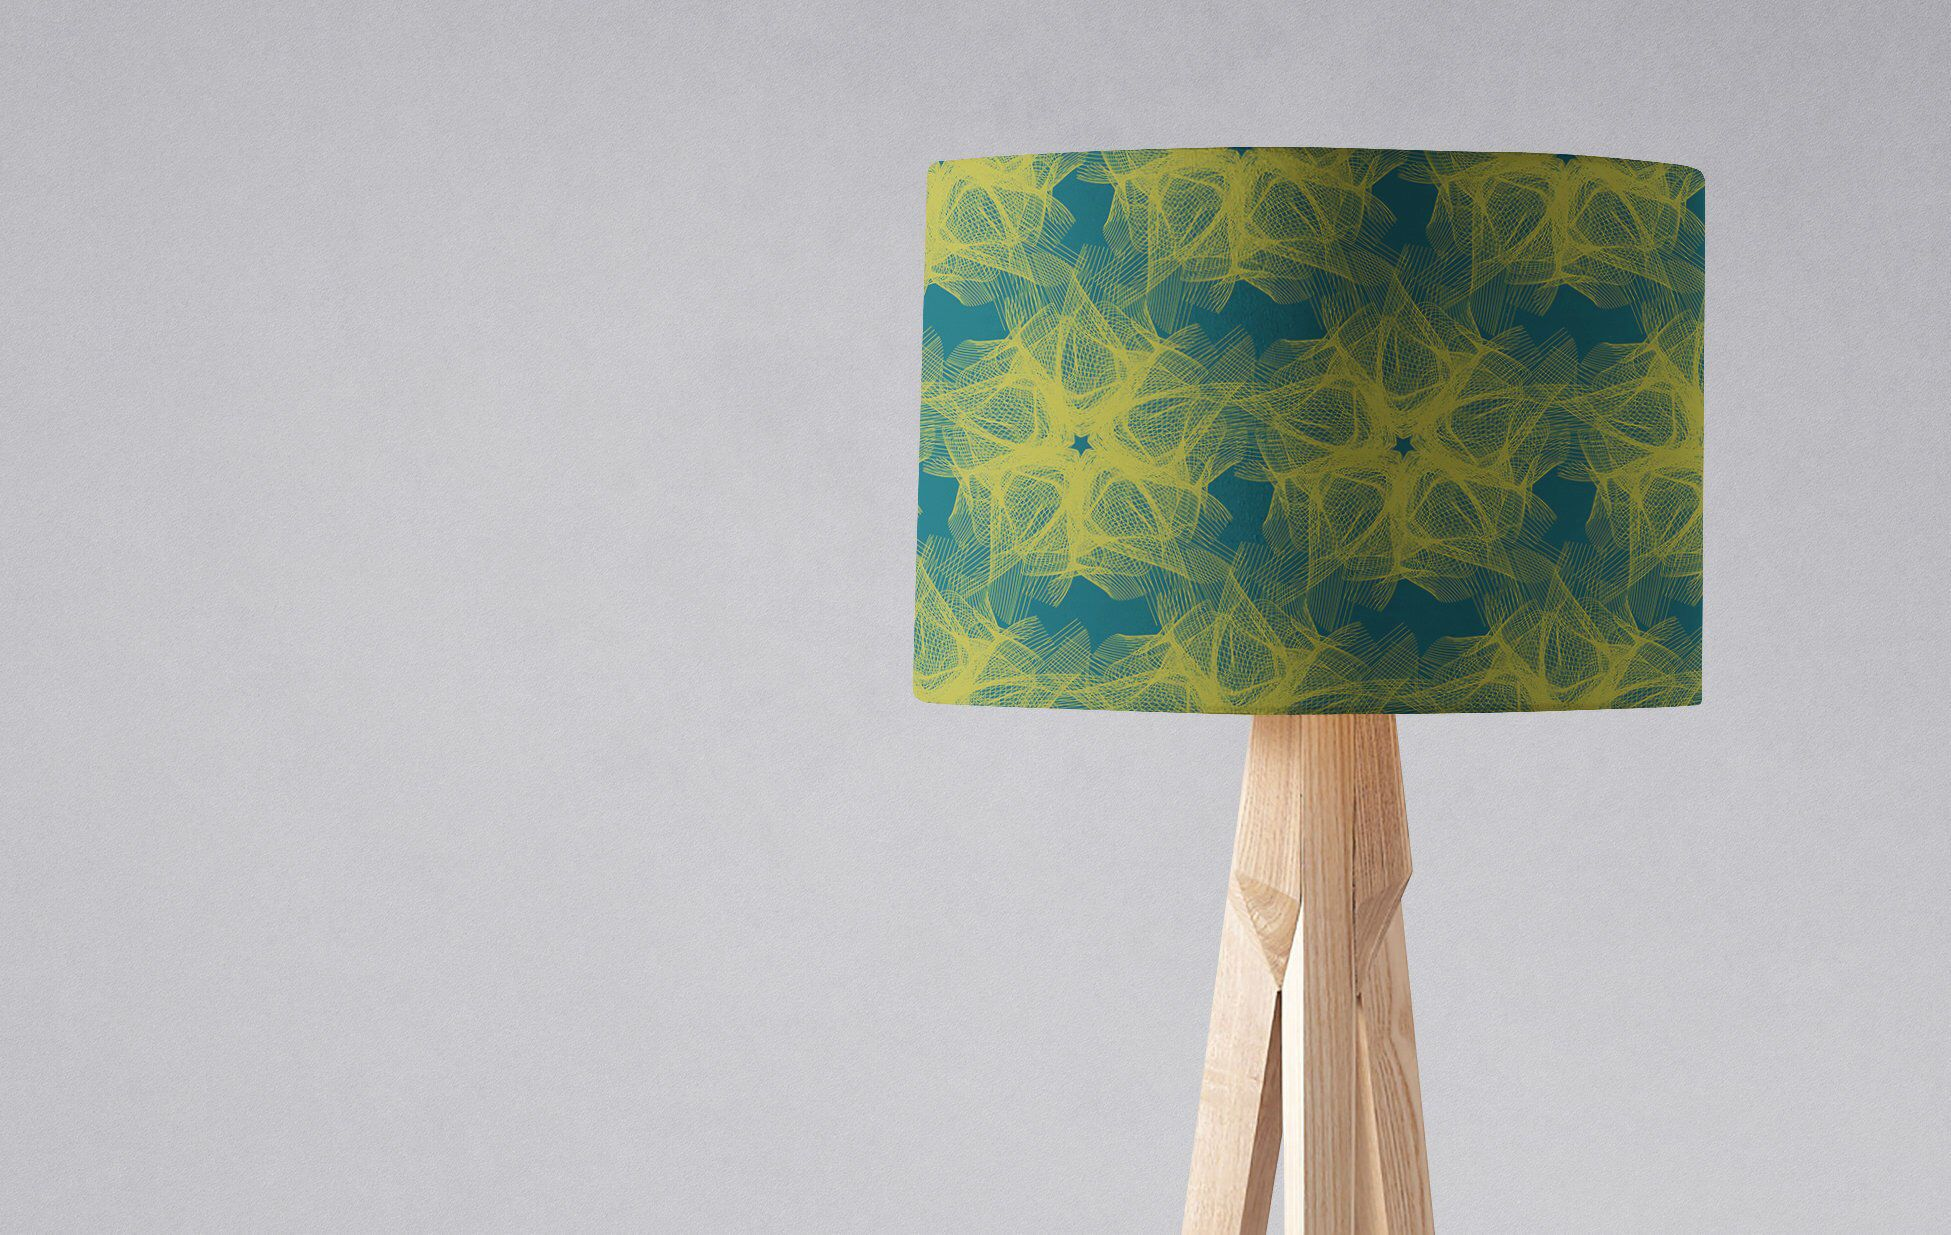 Blue And Yellow Decor Navy Blue Lamp Shade Navy And Yellow Patterned Lampshade Abstract Lampshade Mustard Lampshade Yellow Light Shade With Images Blue Lamp Navy Blue Lamp Shade Blue Lamp Shade